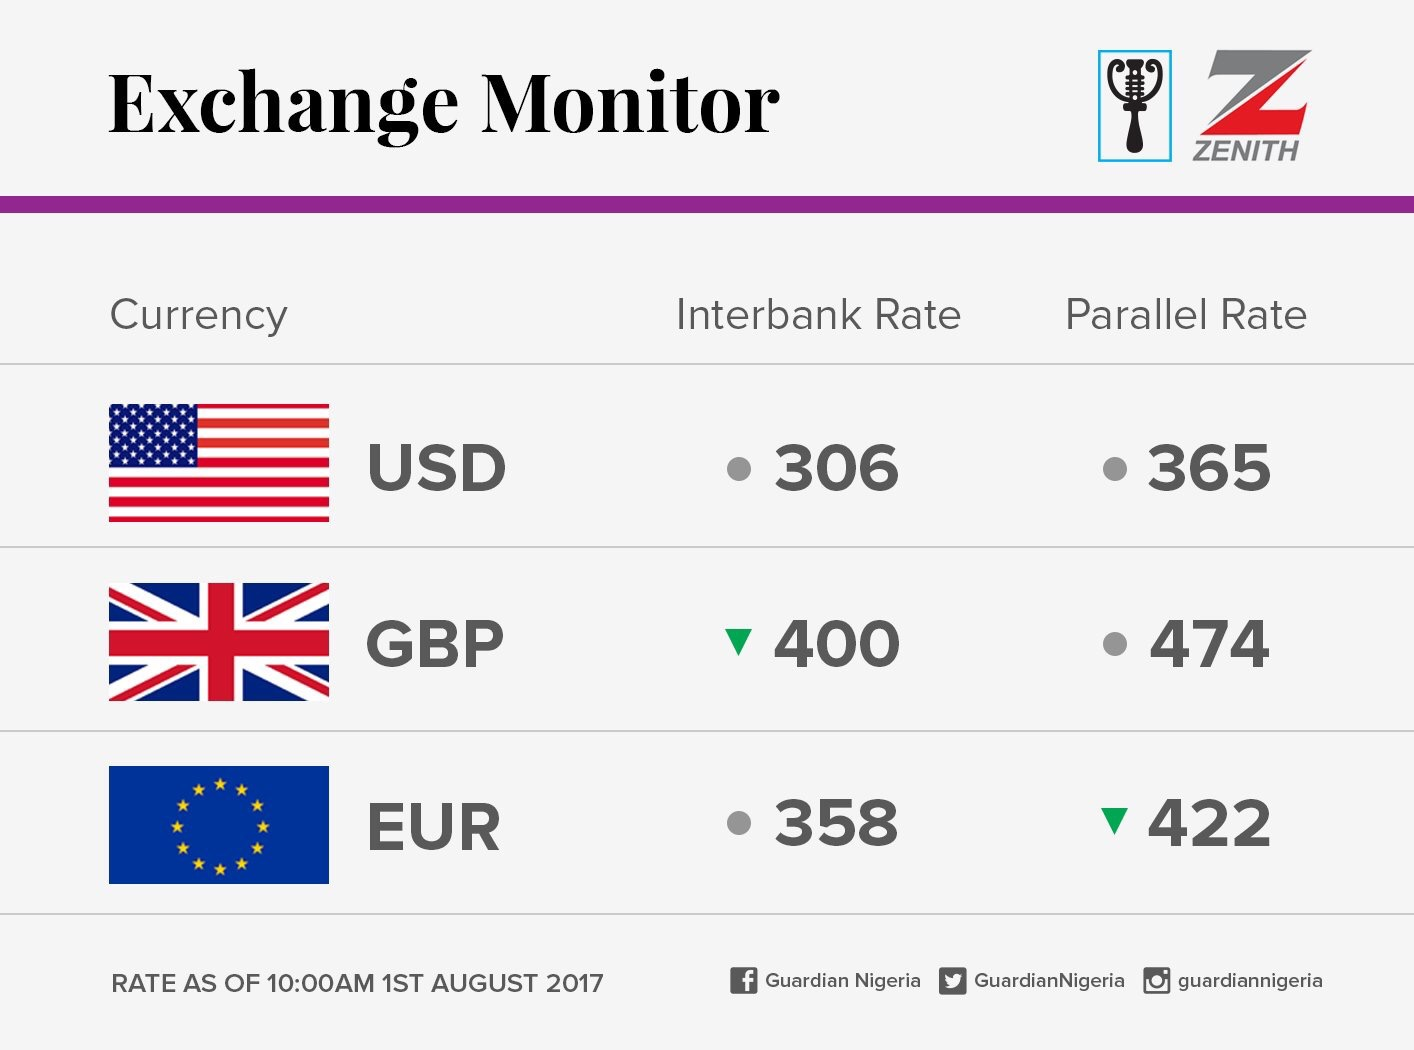 Exchange Rate For 1st August 2017